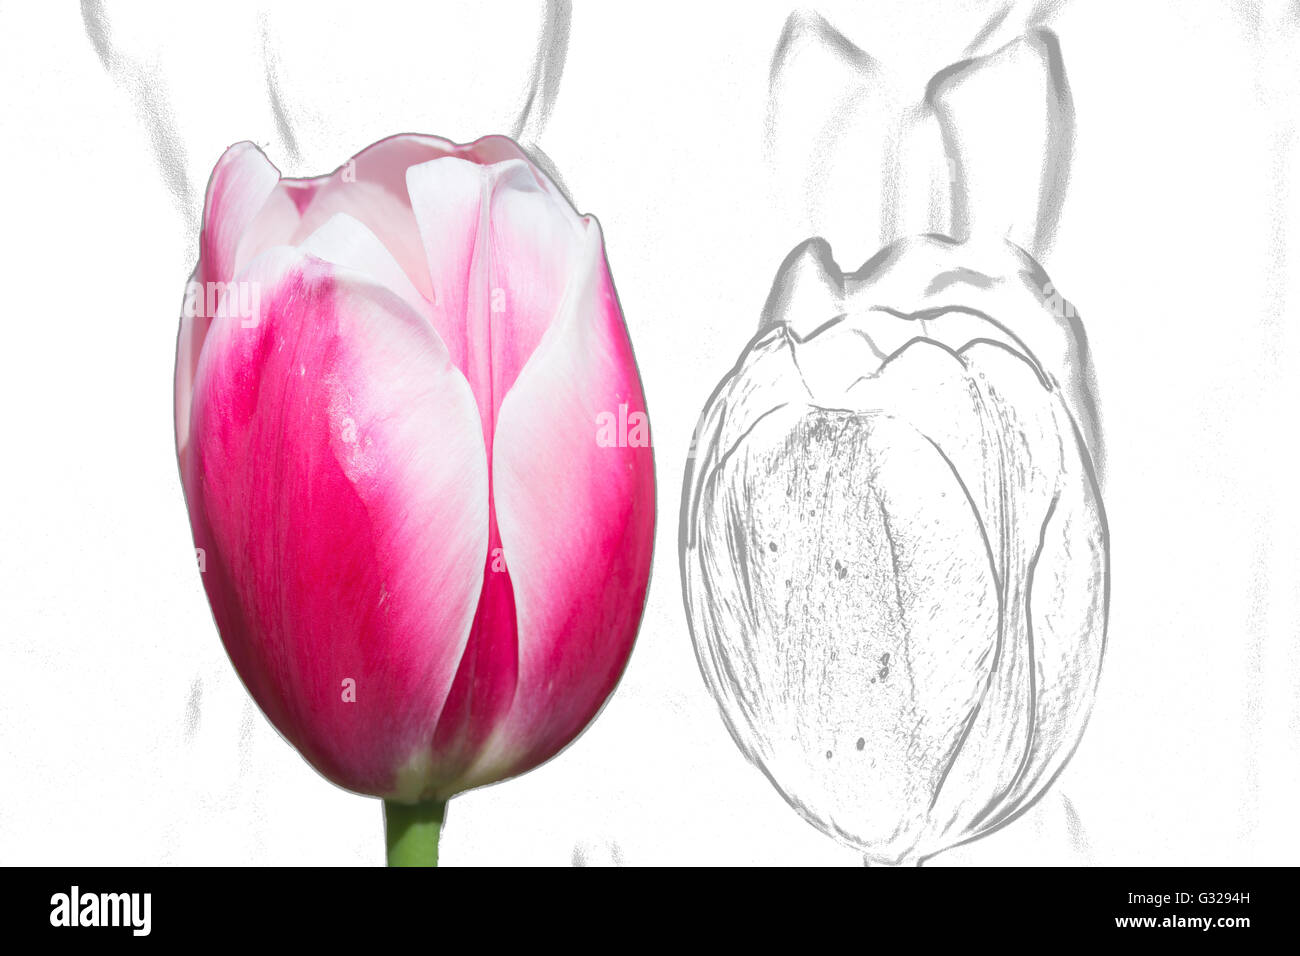 Pink tulip and sketch background - Stock Image